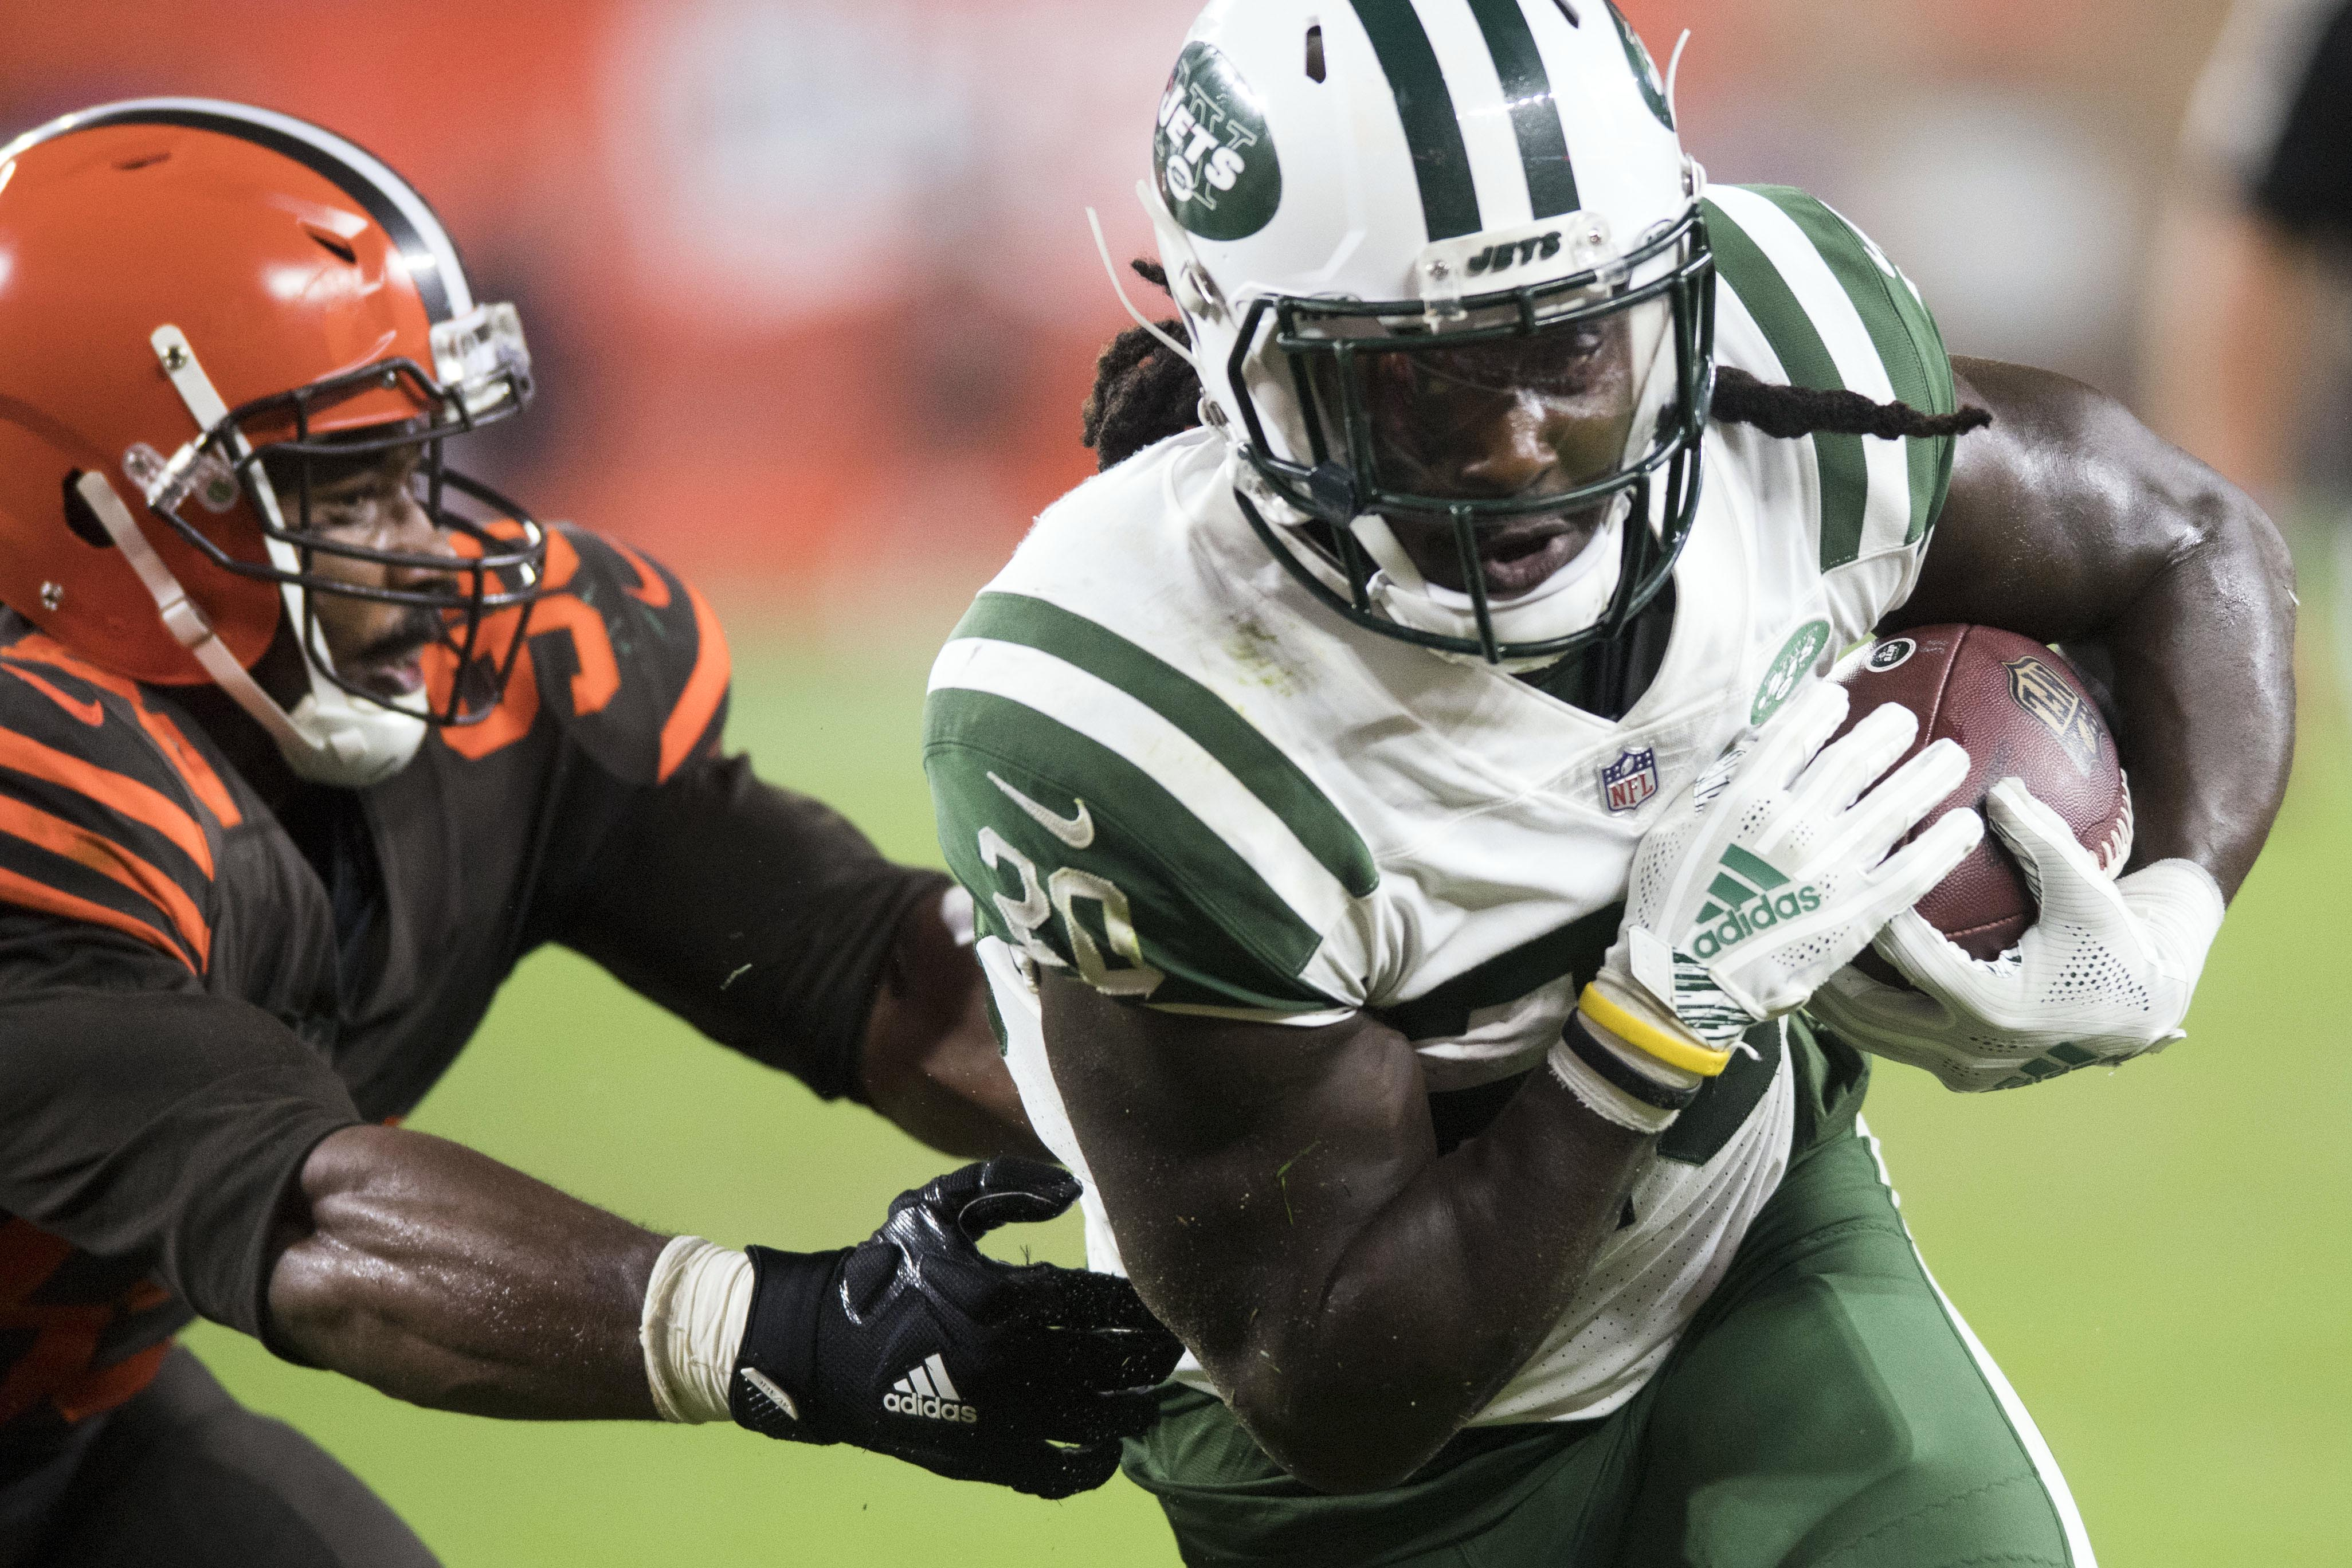 Could the Browns move Duke Johnson and bring Isaiah Crowell back?